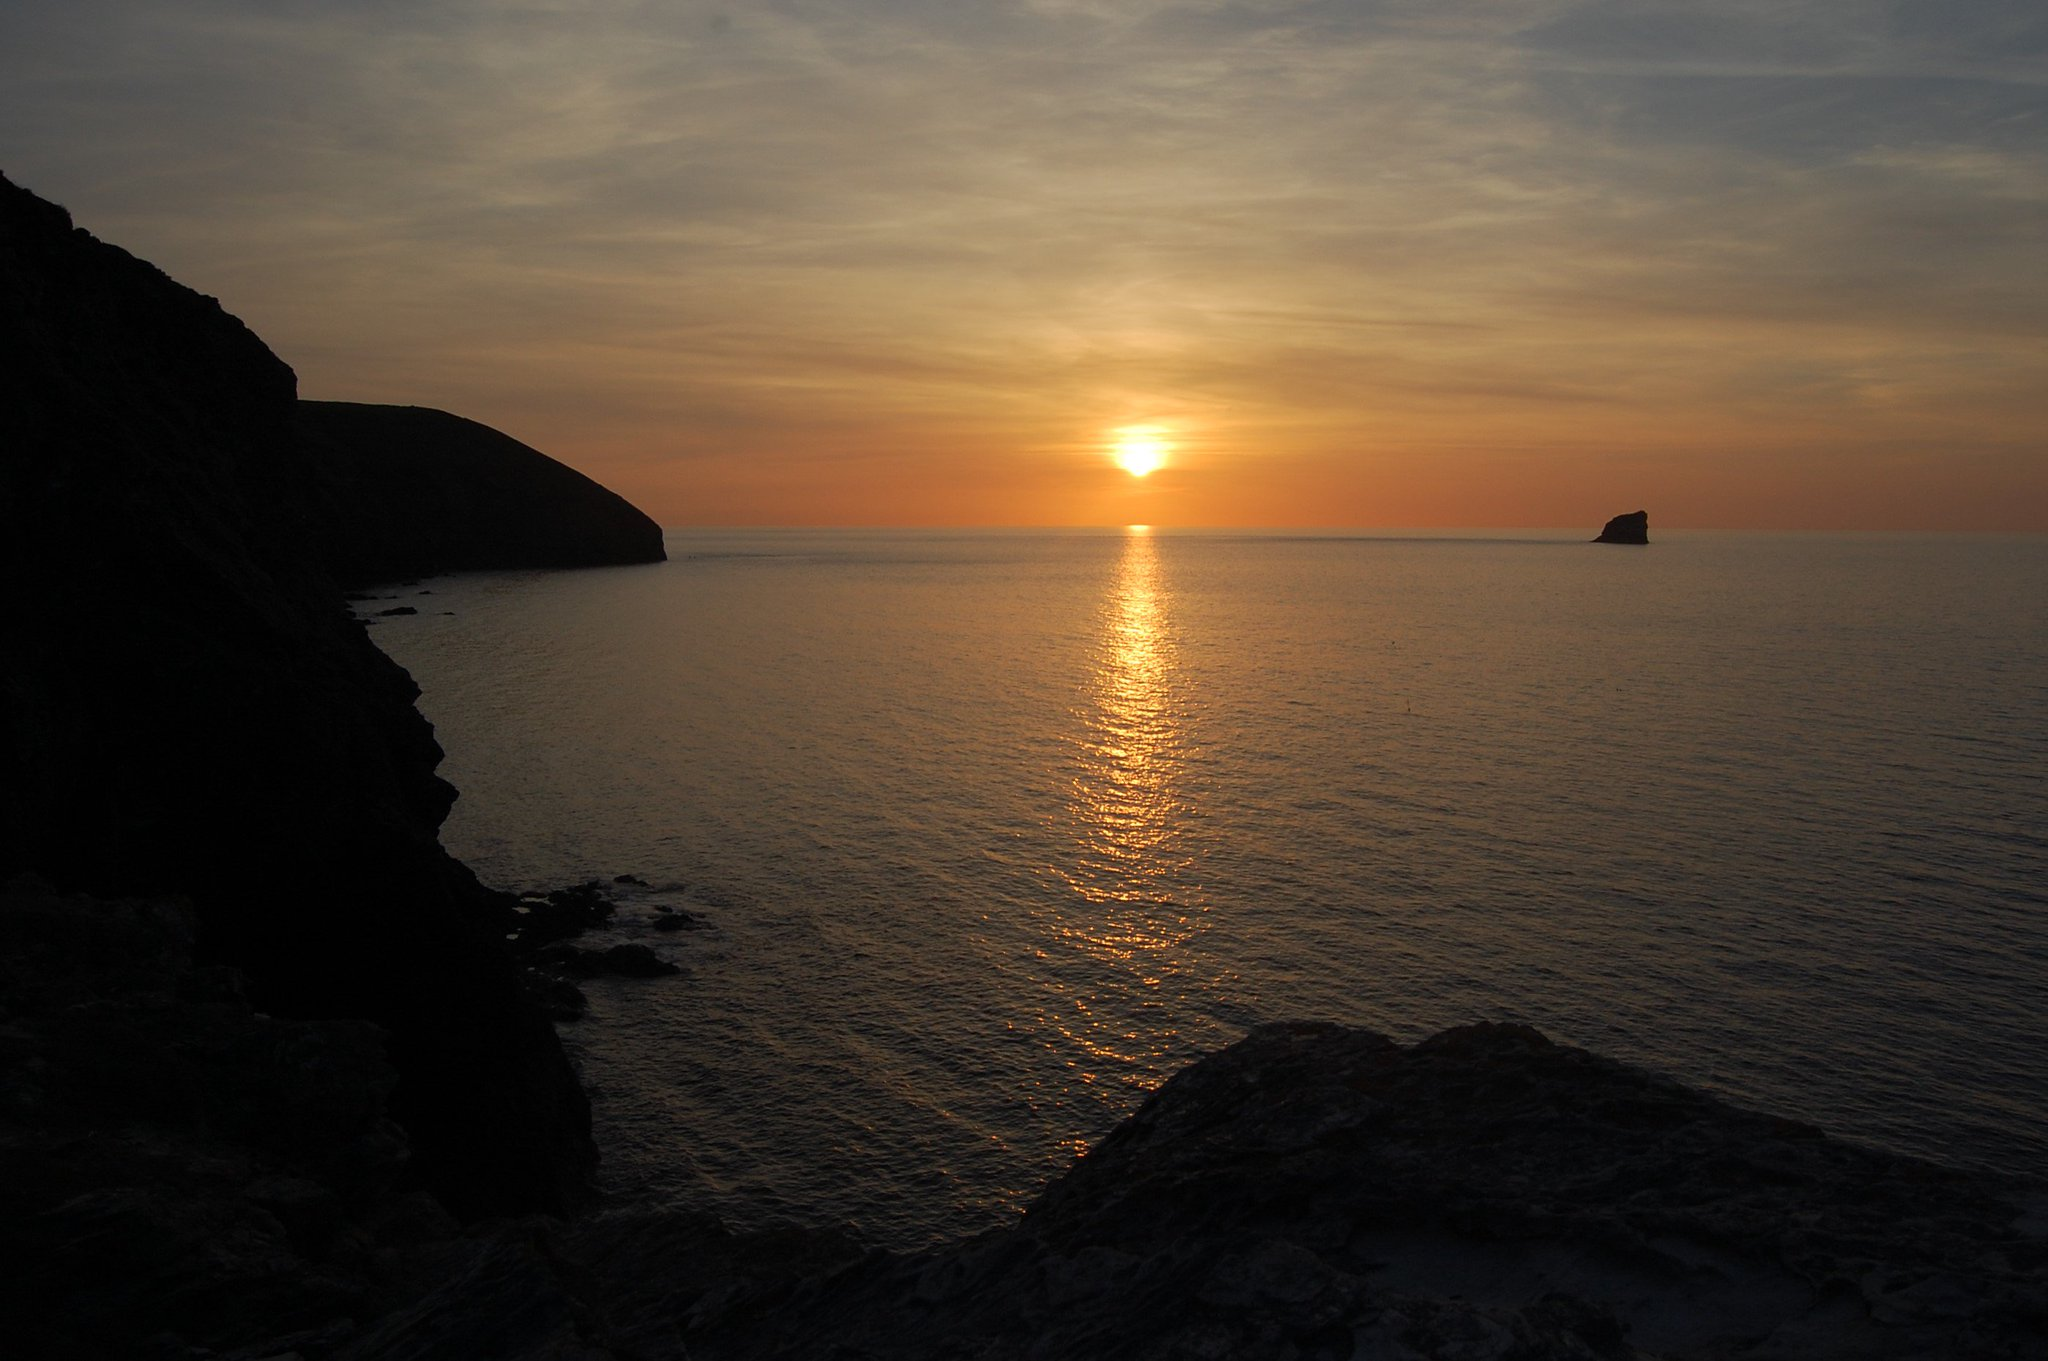 Sundown on Sunday at St Agnes, Cornwall